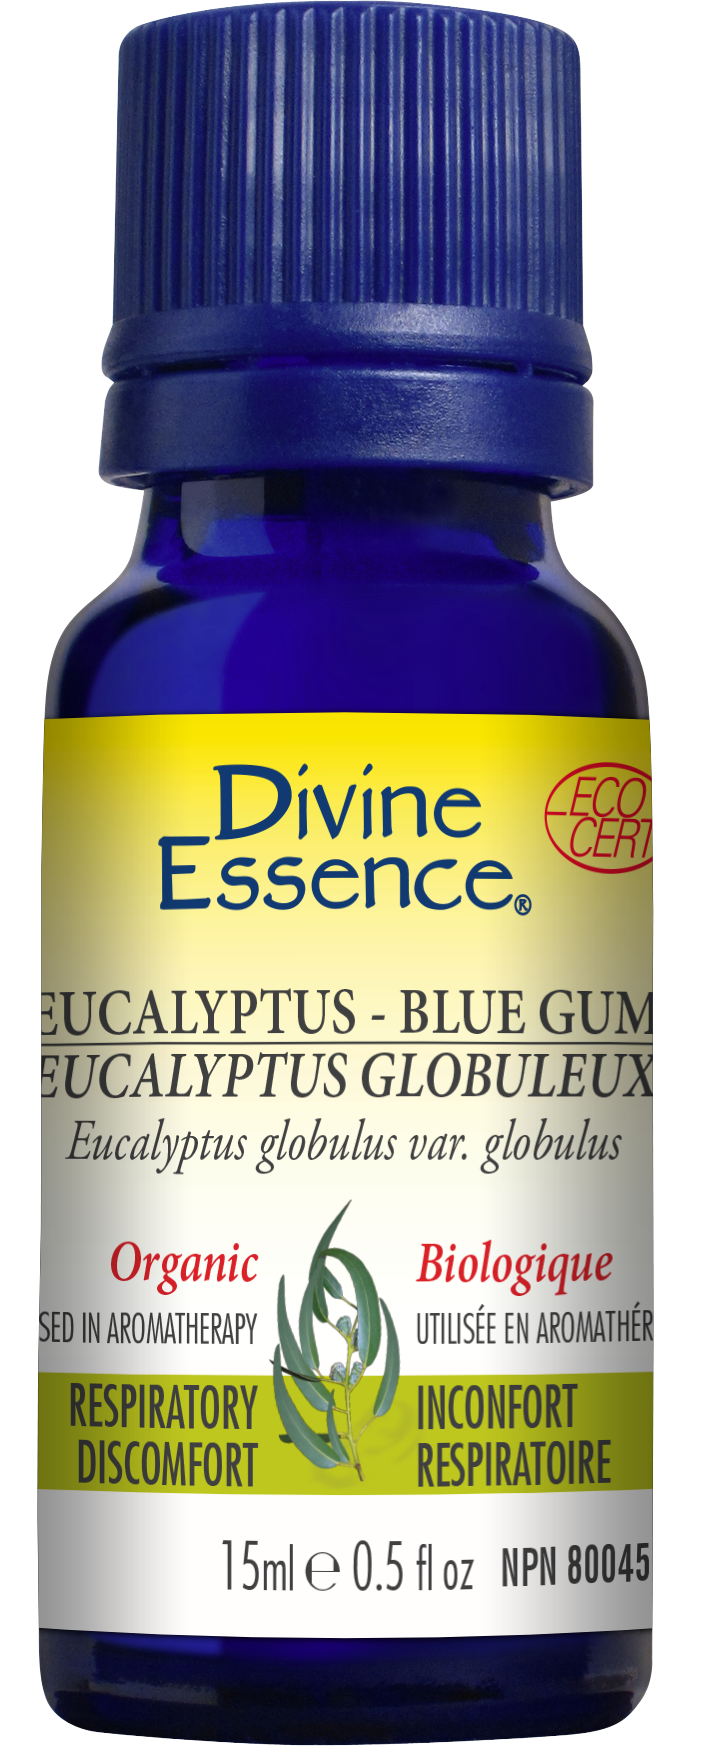 Eucalyptus - Blue Gum 15ml